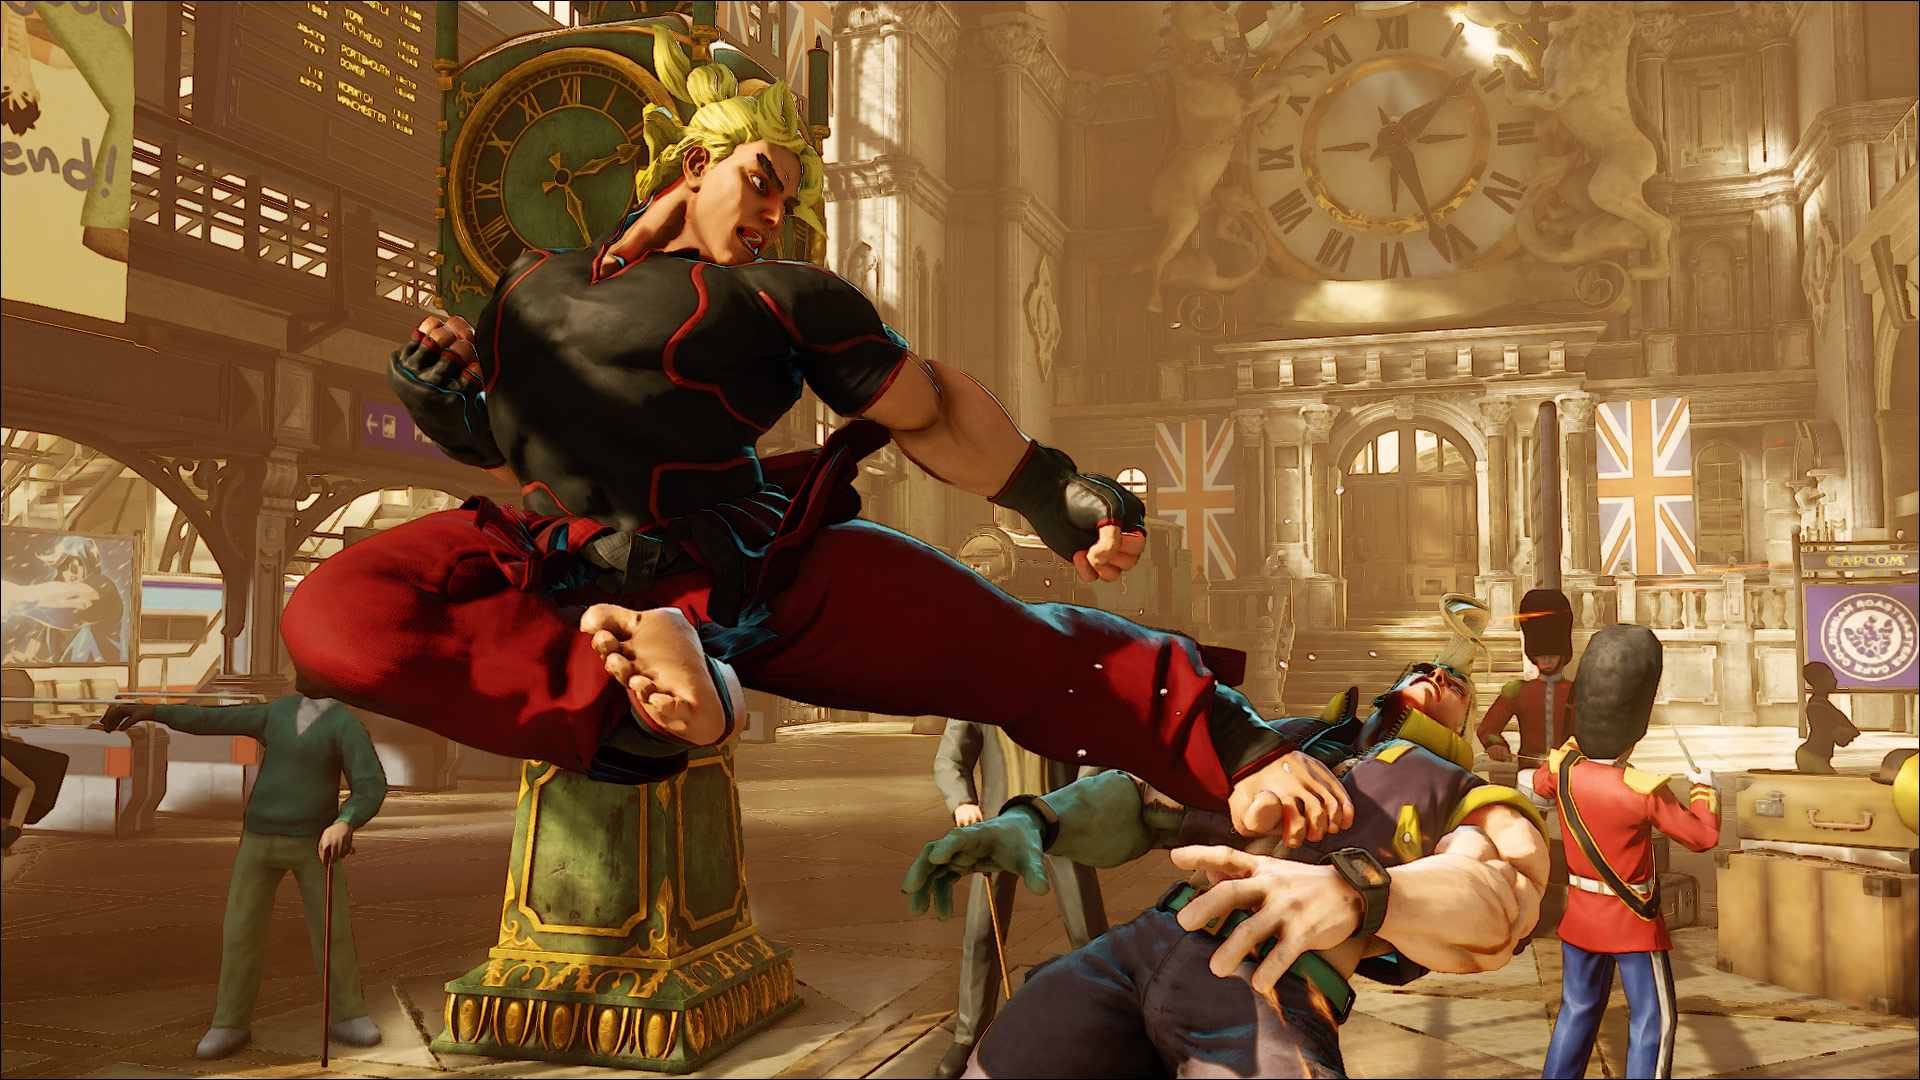 Ken Street Fighter 5 SDCC 2015 reveal 9 out of 13 image gallery